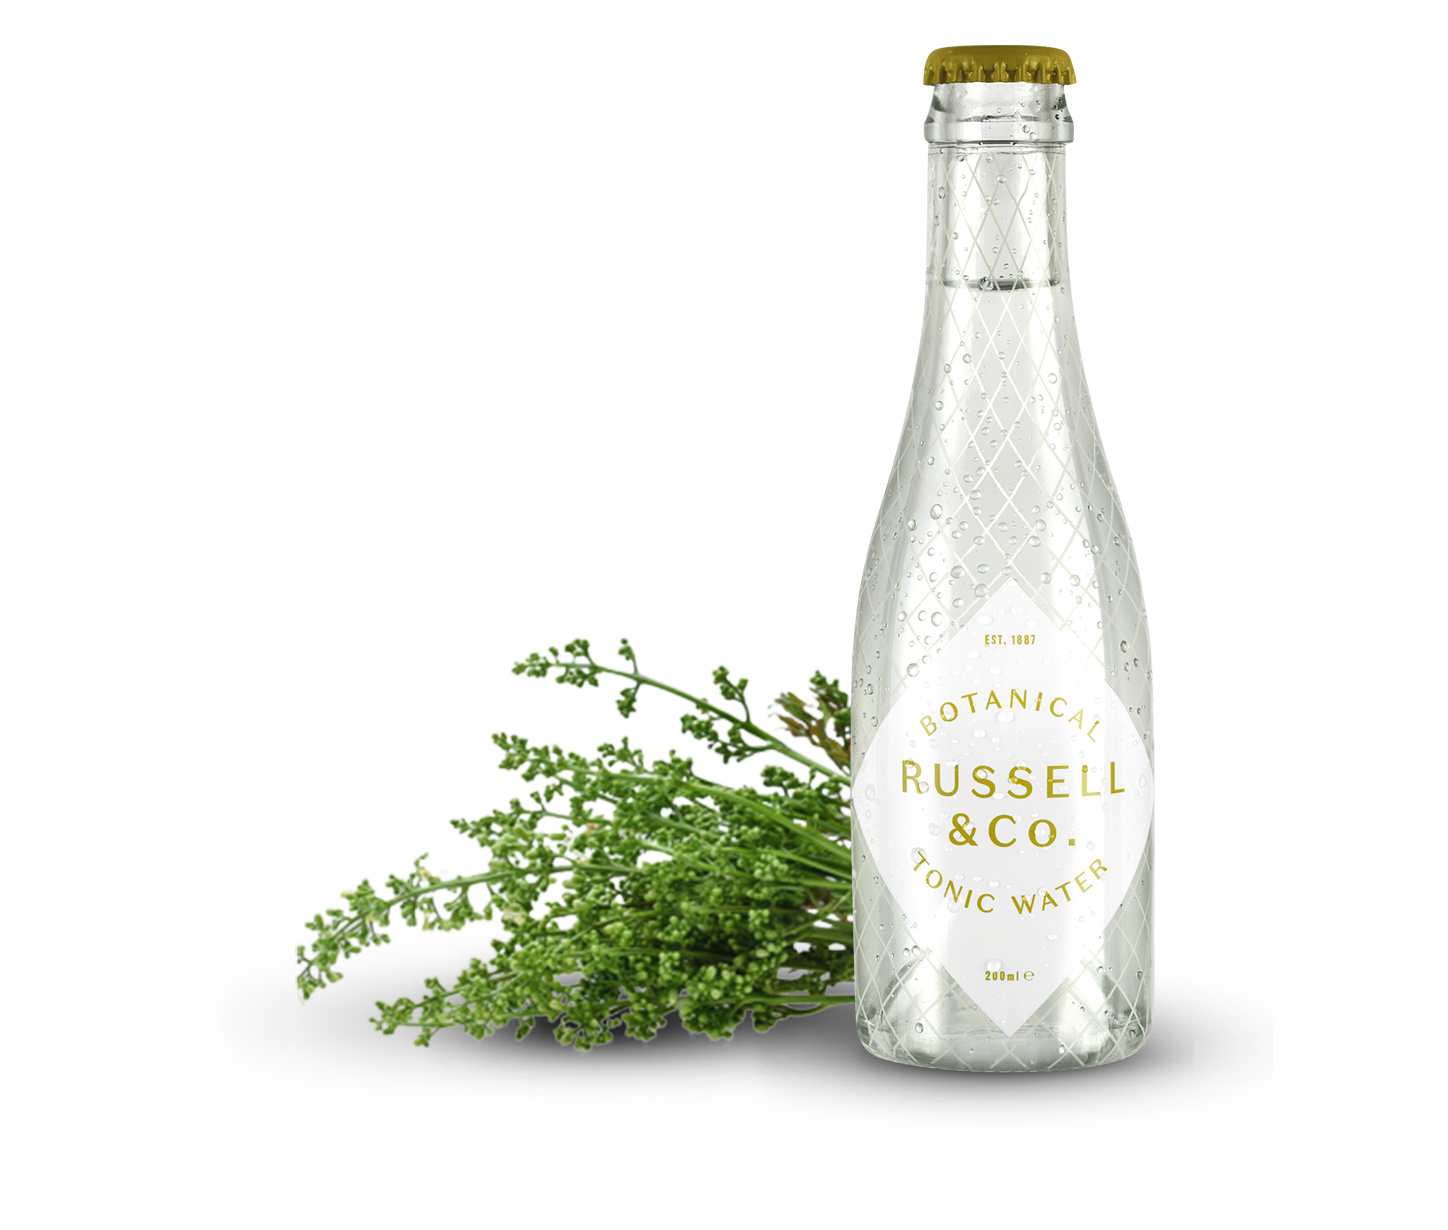 Russell & Co Botanical Tonic Water, Alles over gin.